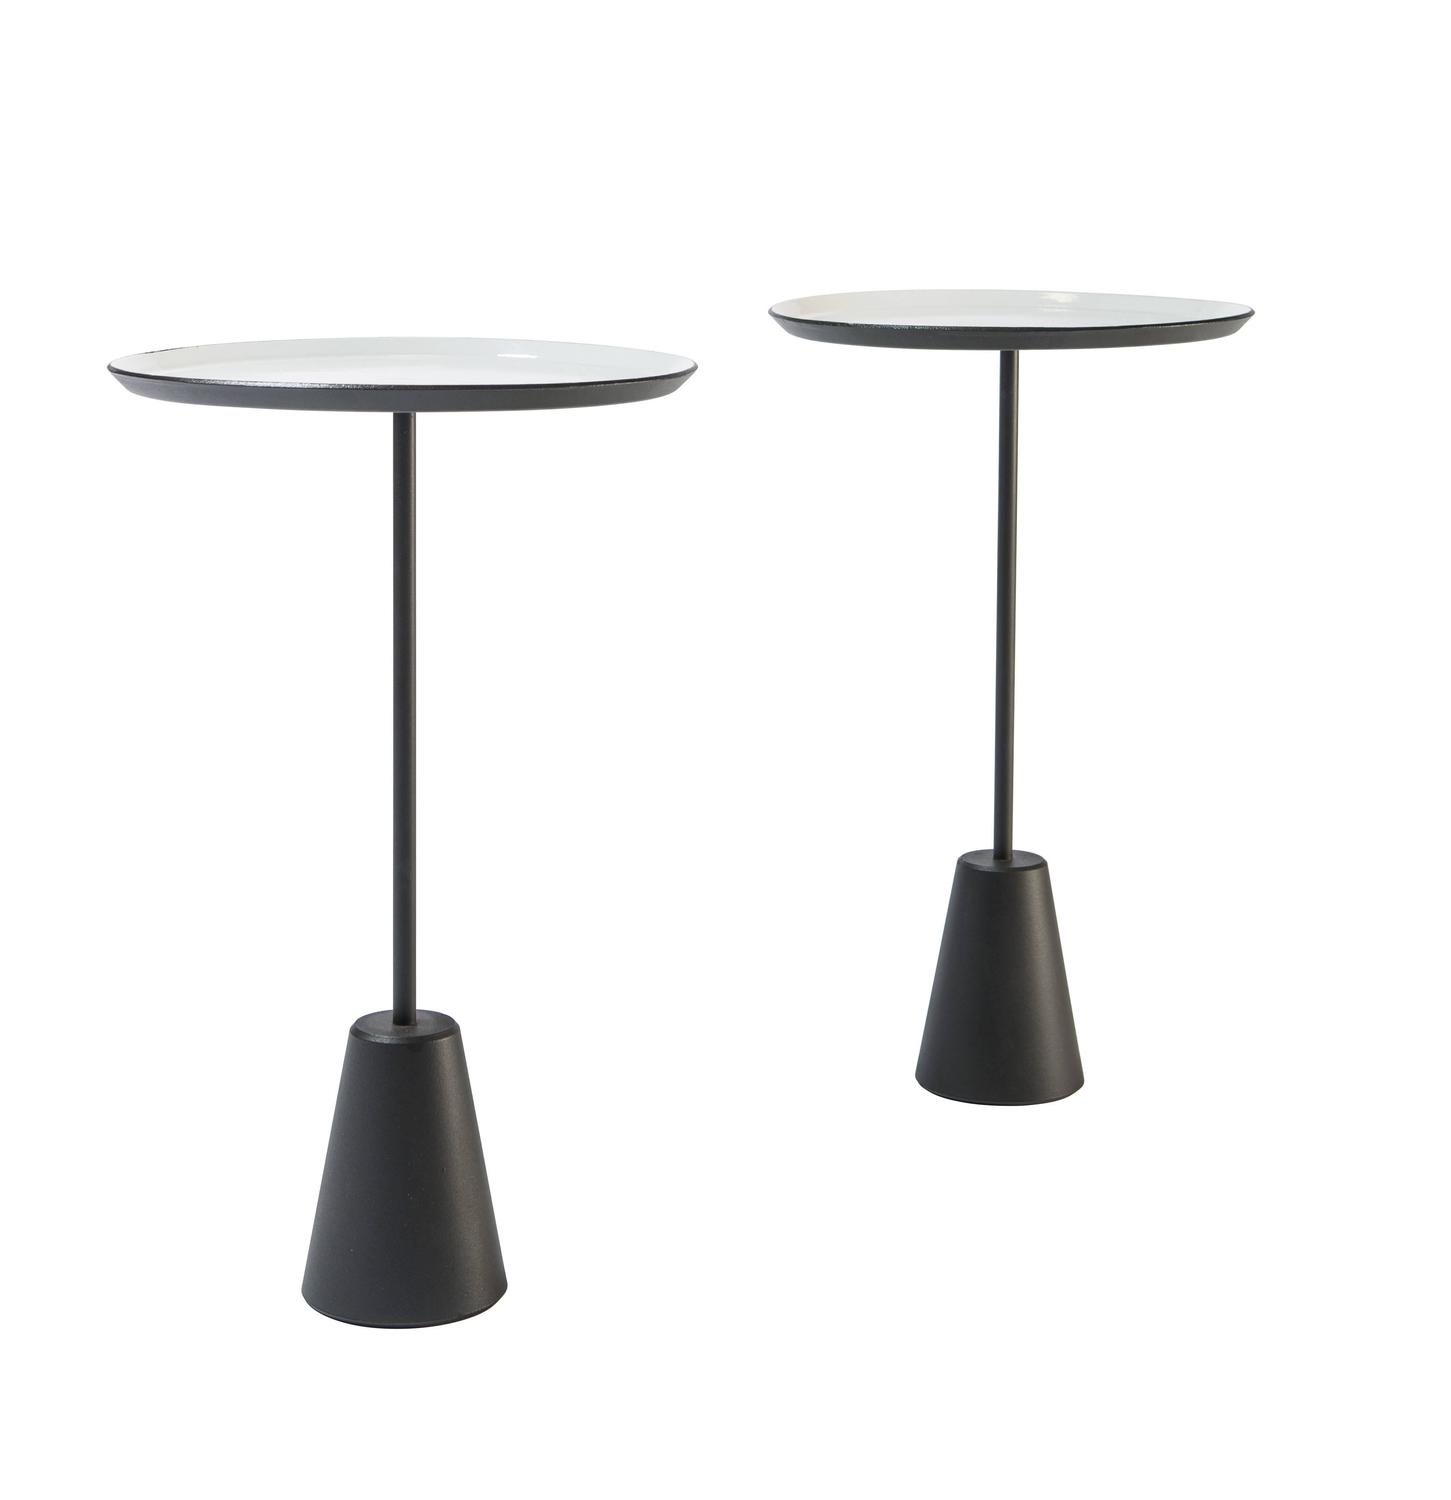 Pair Of White Tom Dixon Quot Spot Quot Tables For Sale At 1stdibs